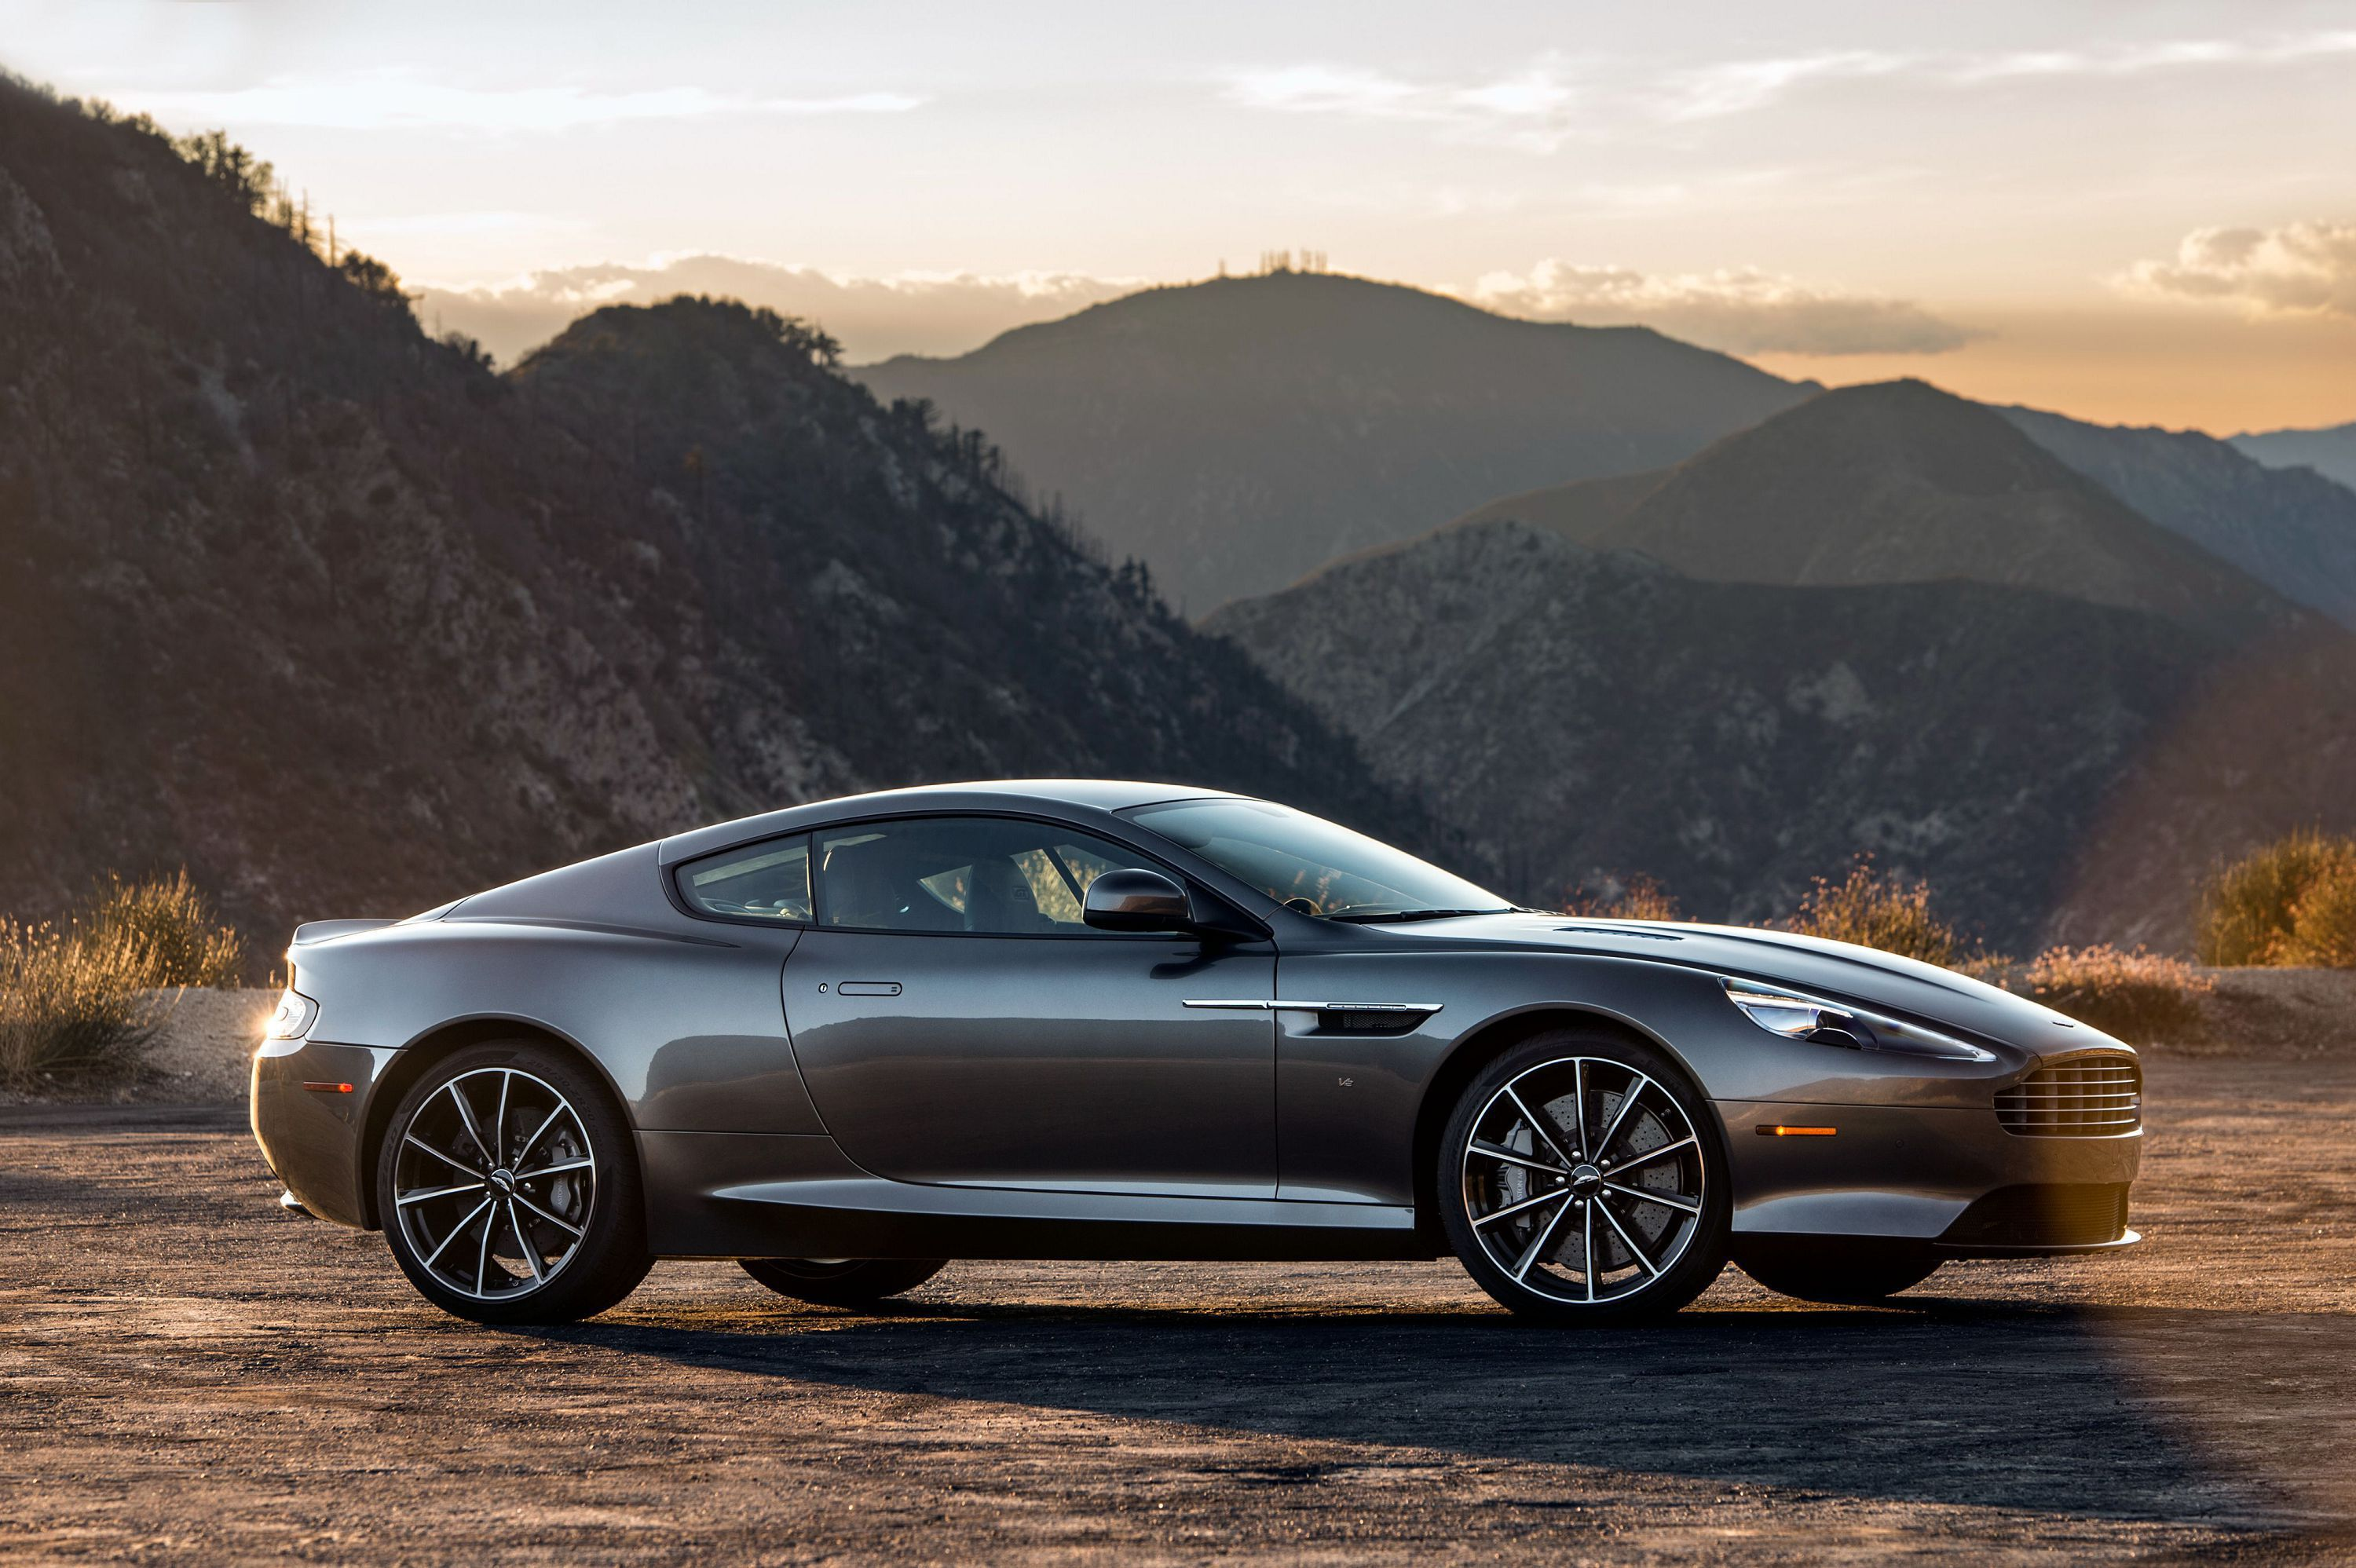 Aston Martin Db9 Desktop Wallpaper